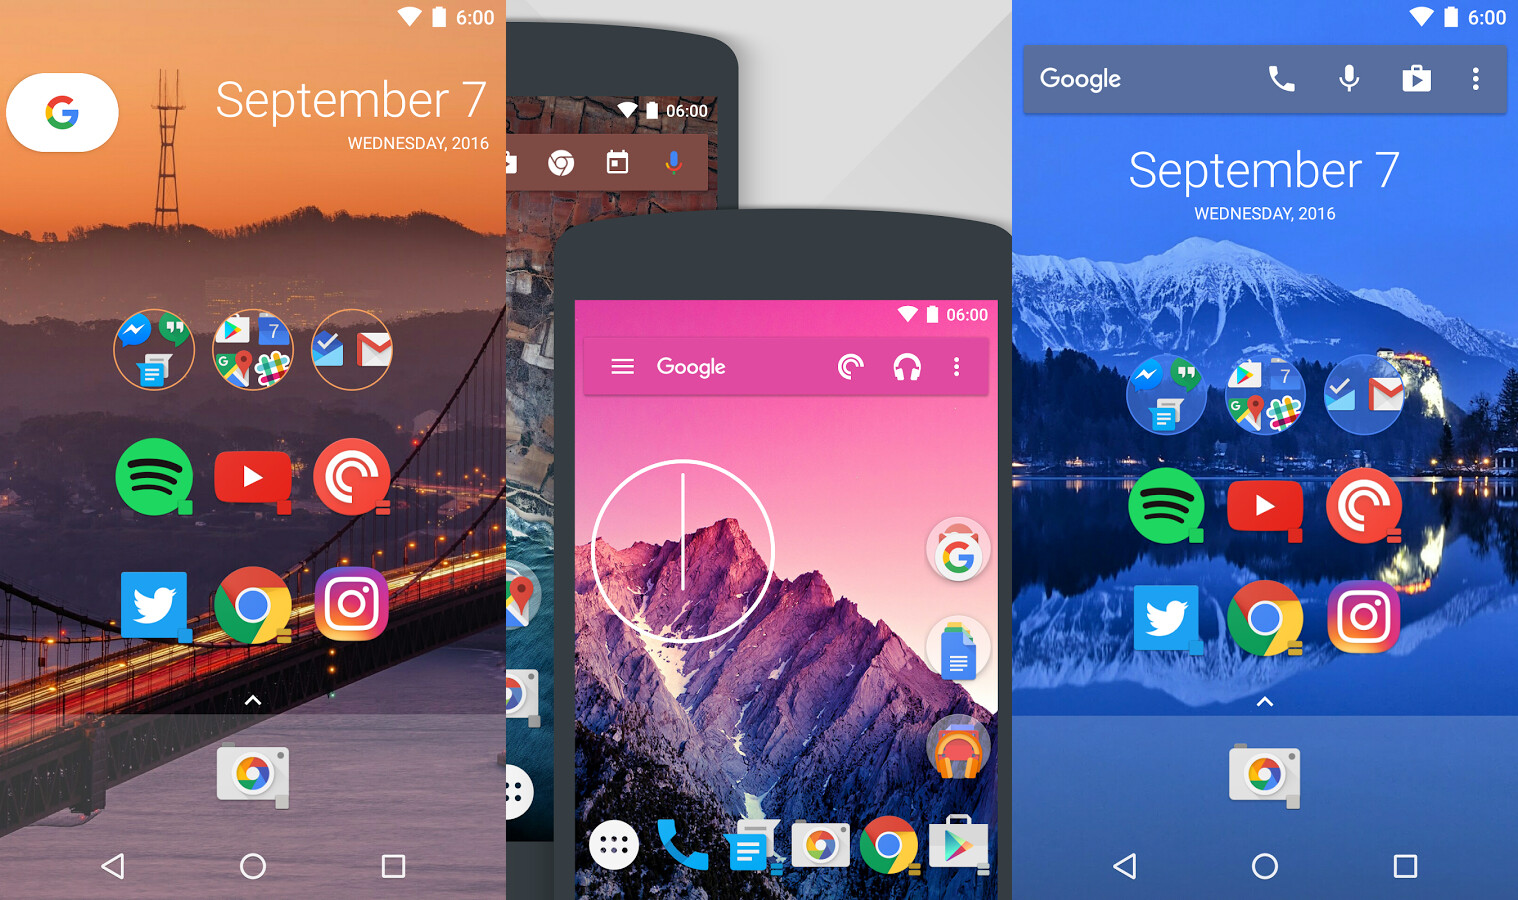 Pixel launcher para android 7.0